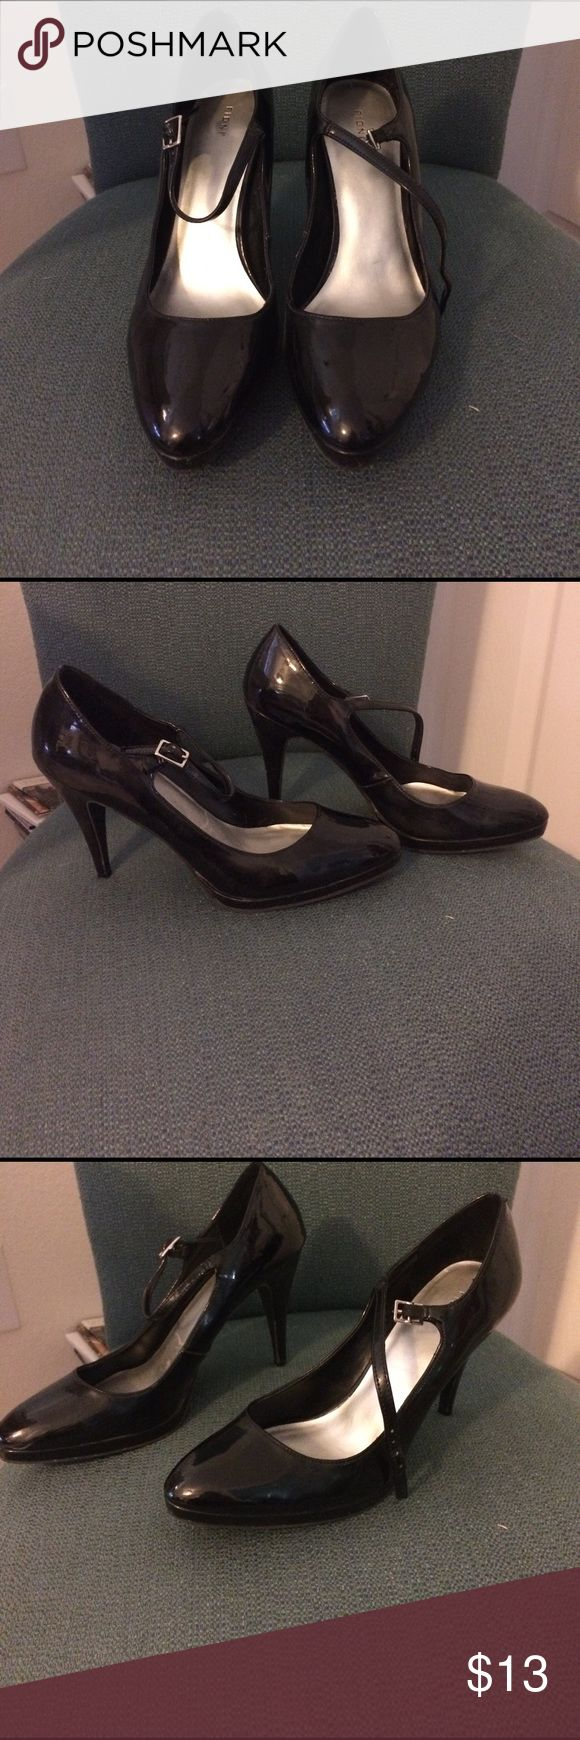 Fiona shiny black Mary Jane heels Well worn could be improved with cleaning. Slightly rounded pointy toe with a small platform on toe high heels. Mary Jane, patent shine. Scratches, wear and dullness in some spots. Straps are used but still work fine. All man made materials FIONI Clothing Shoes Heels